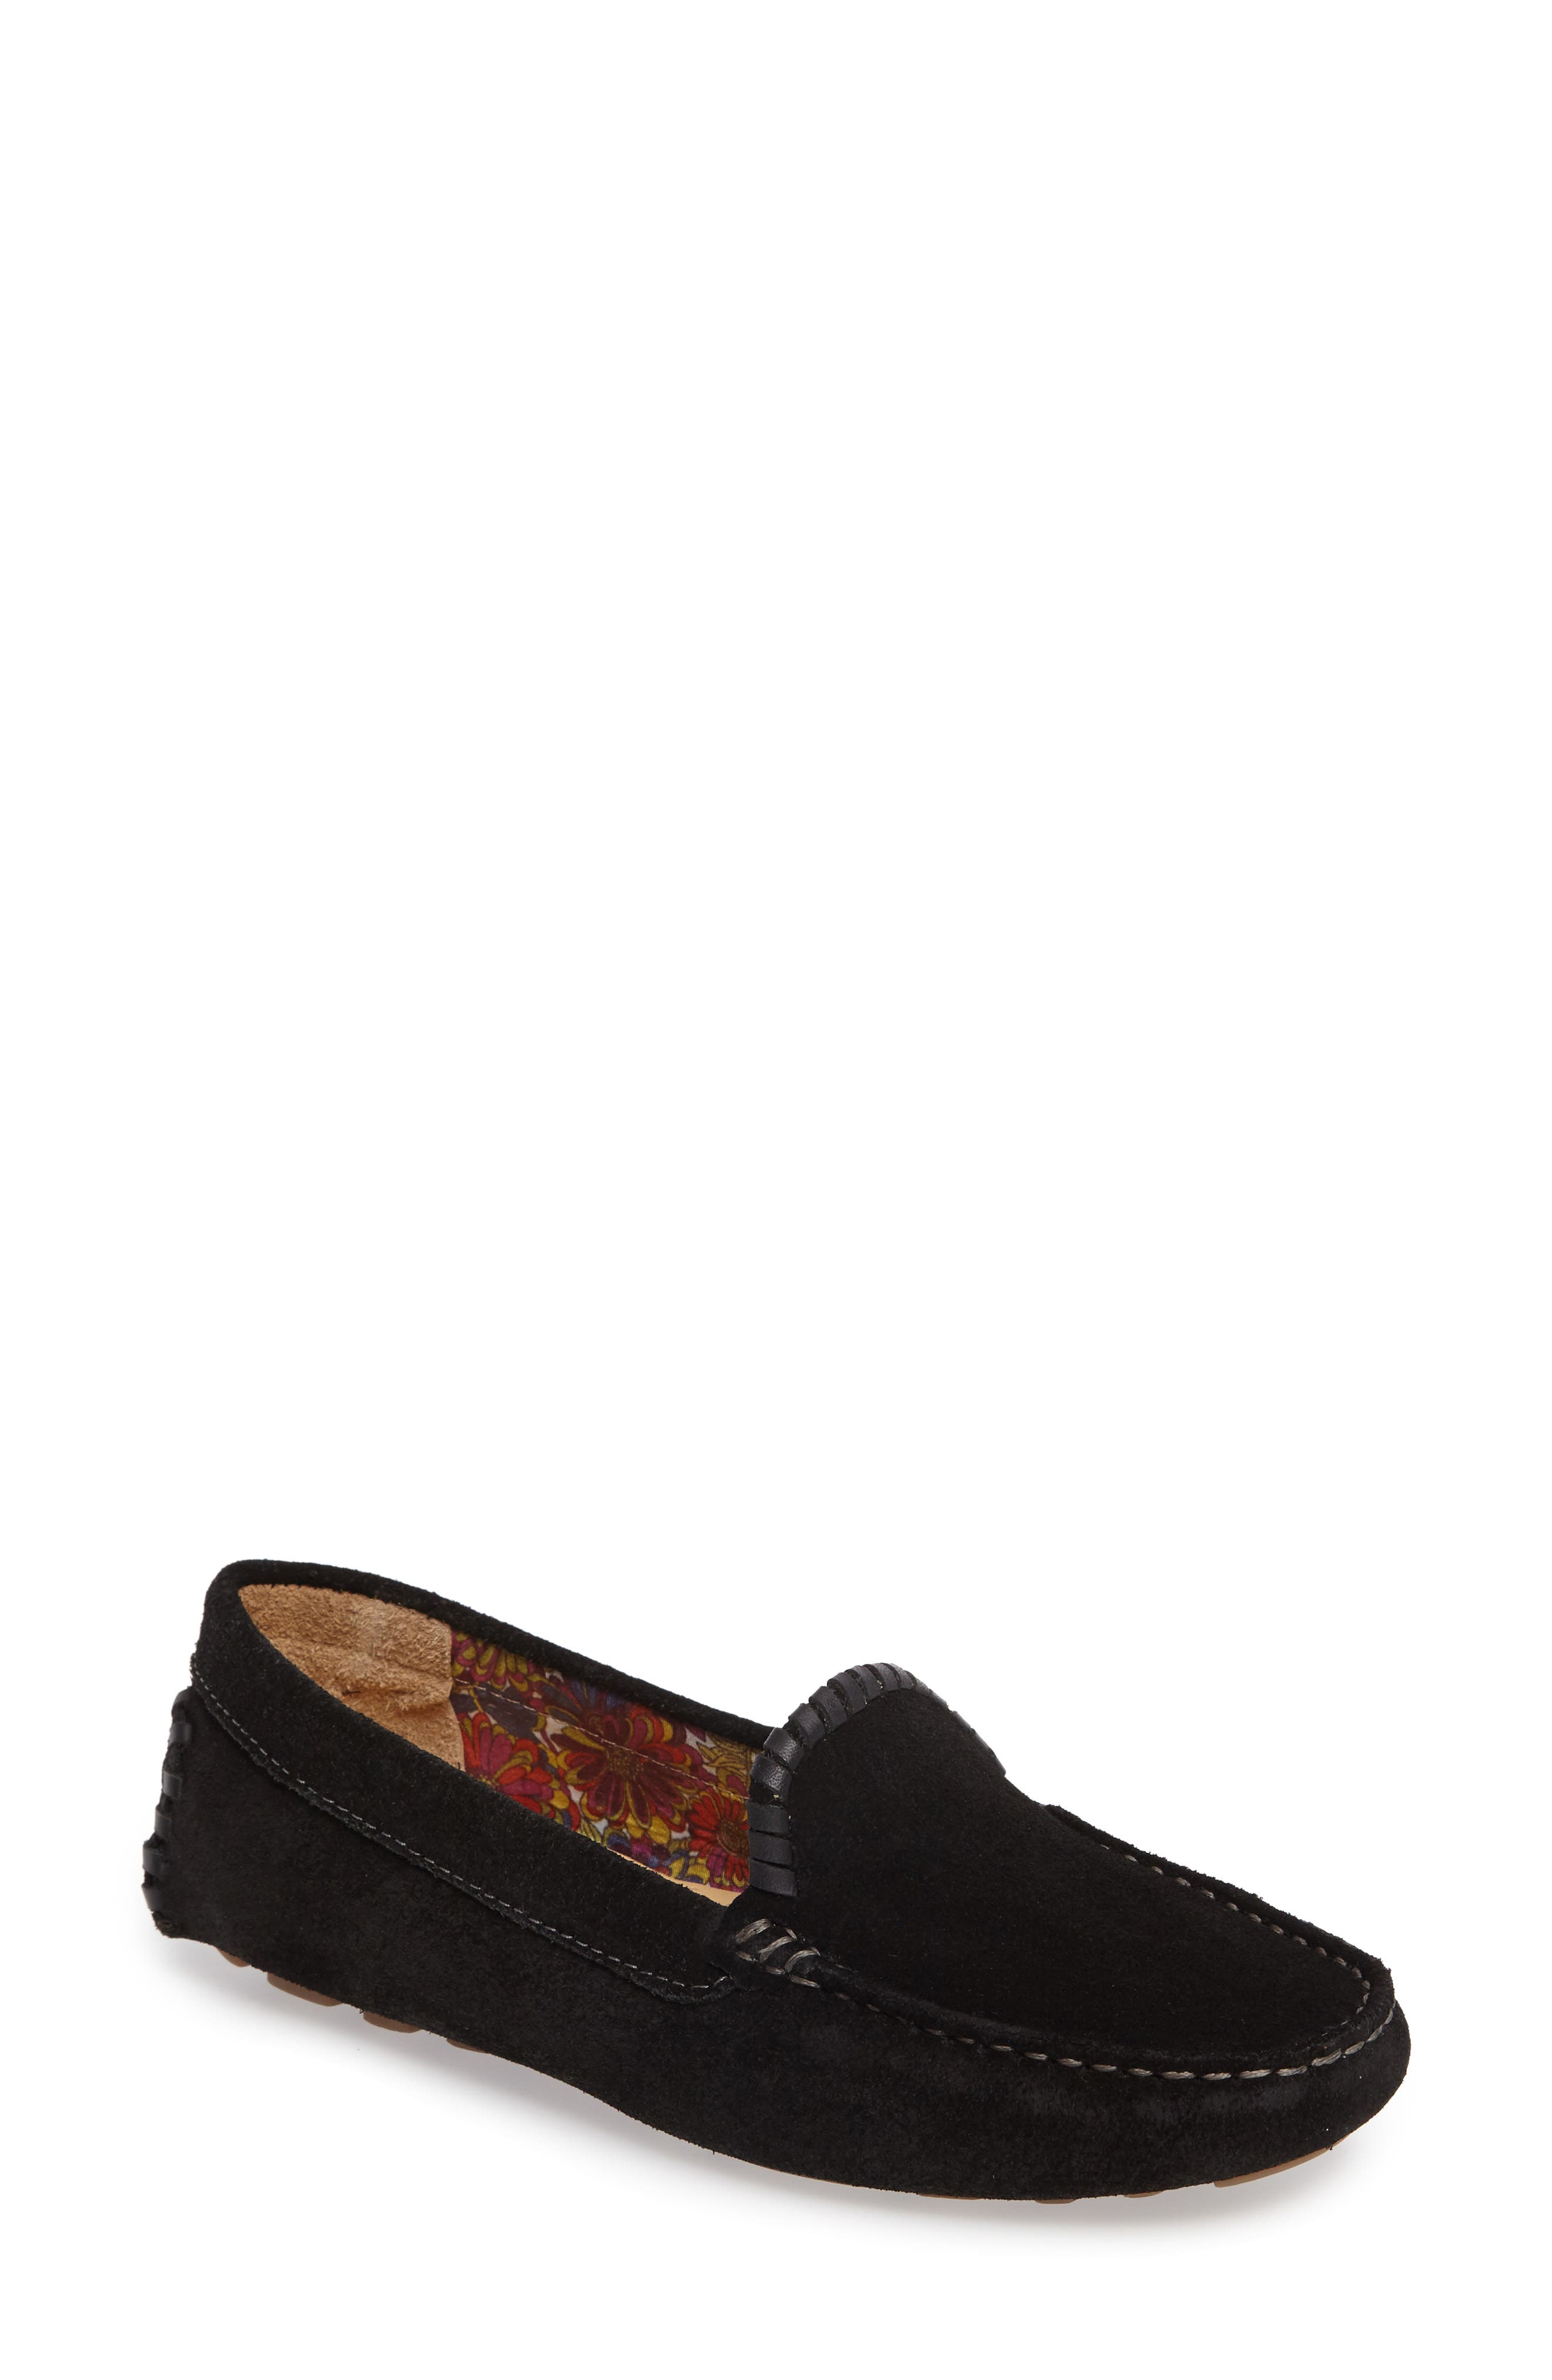 Taylor Driving Loafer,                         Main,                         color, Black Suede